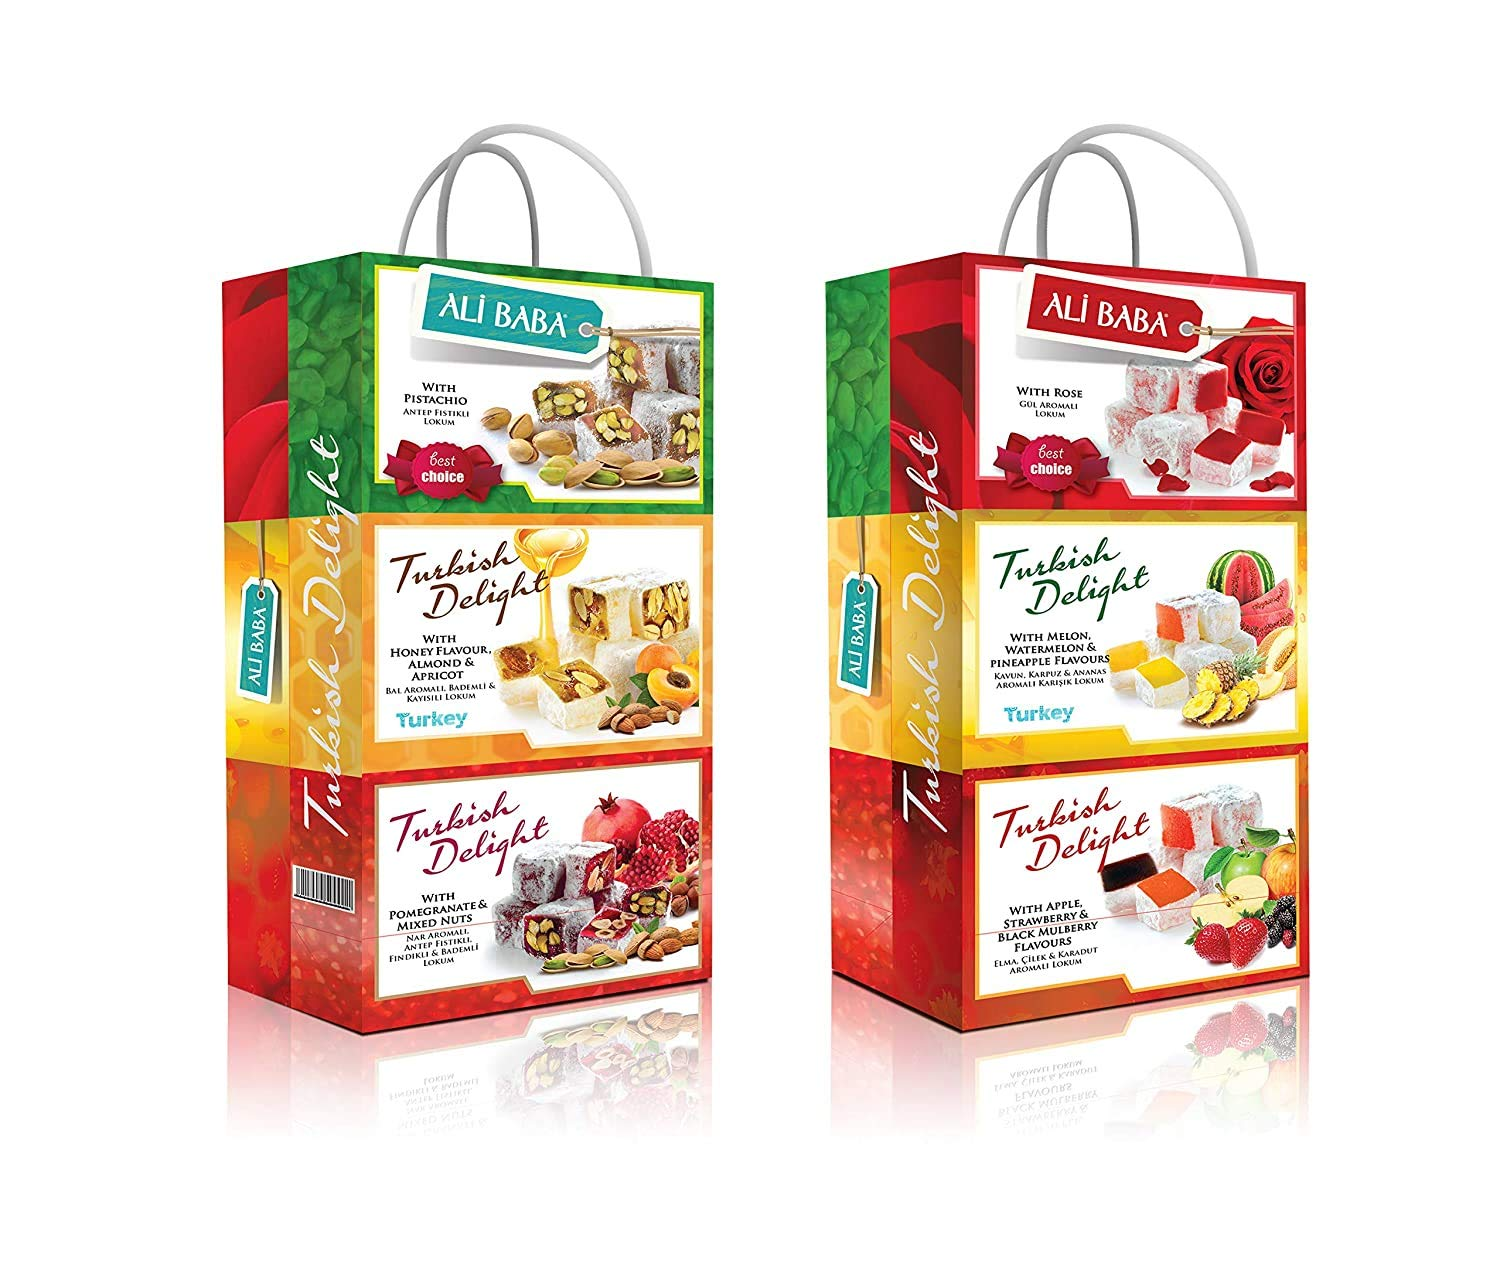 Turkish Delight Lokum Variety Gift Set Pomegranate Mix Nuts Watermelon Pineapple Rose Pistachios Honey Almond Apricot Apple Strawberry Mulberry 1 Gift Bag with Six box set Total 600 Grams 1.4 Lb